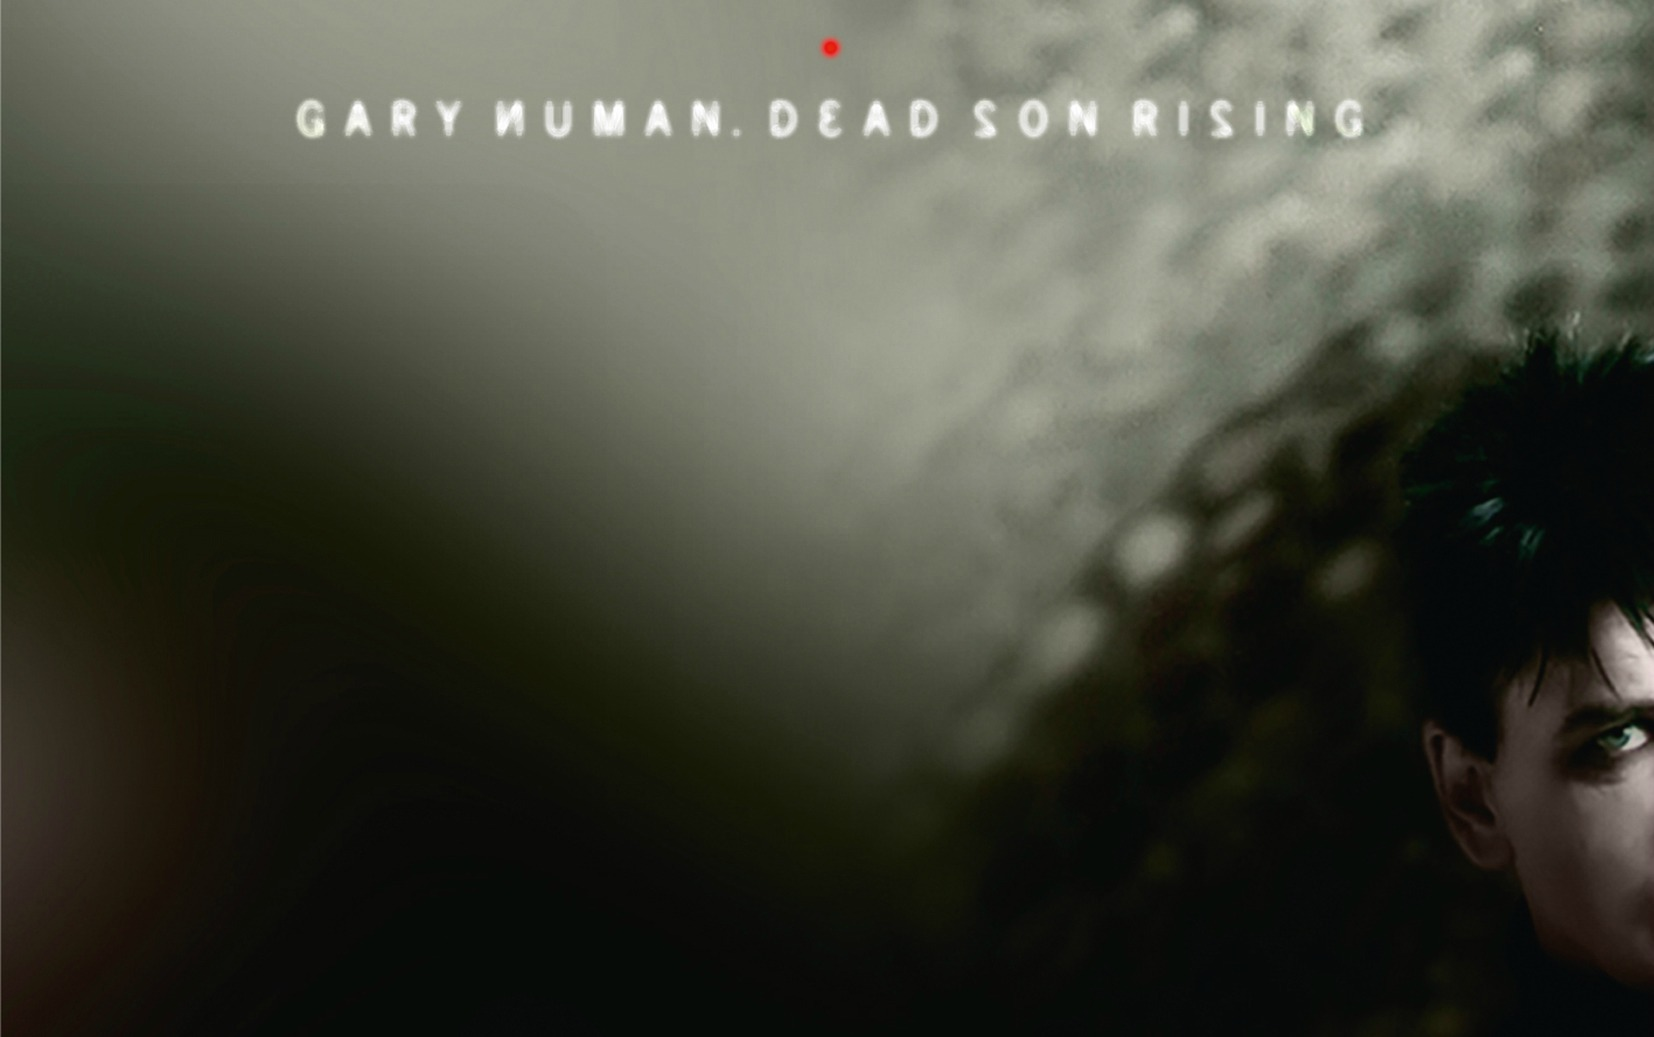 New releases: Gary Numan, '1991: Year Punk Broke,' Art of Noise, Blondie, Human League